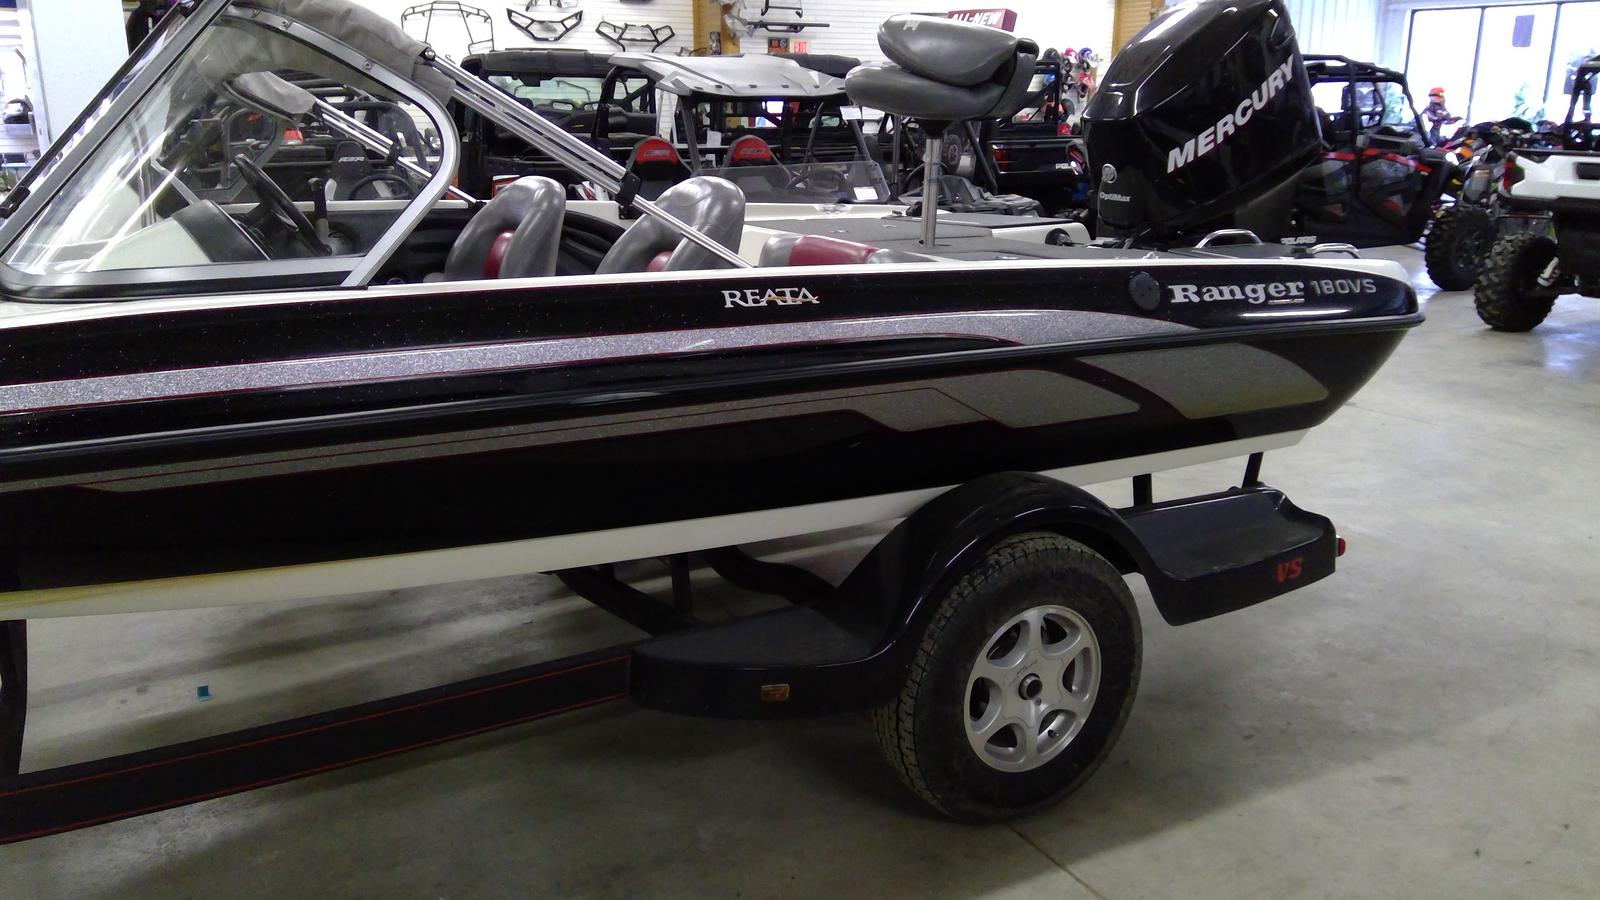 Inventory from Caravelle and Ranger Quam's Marine & Motor Sports